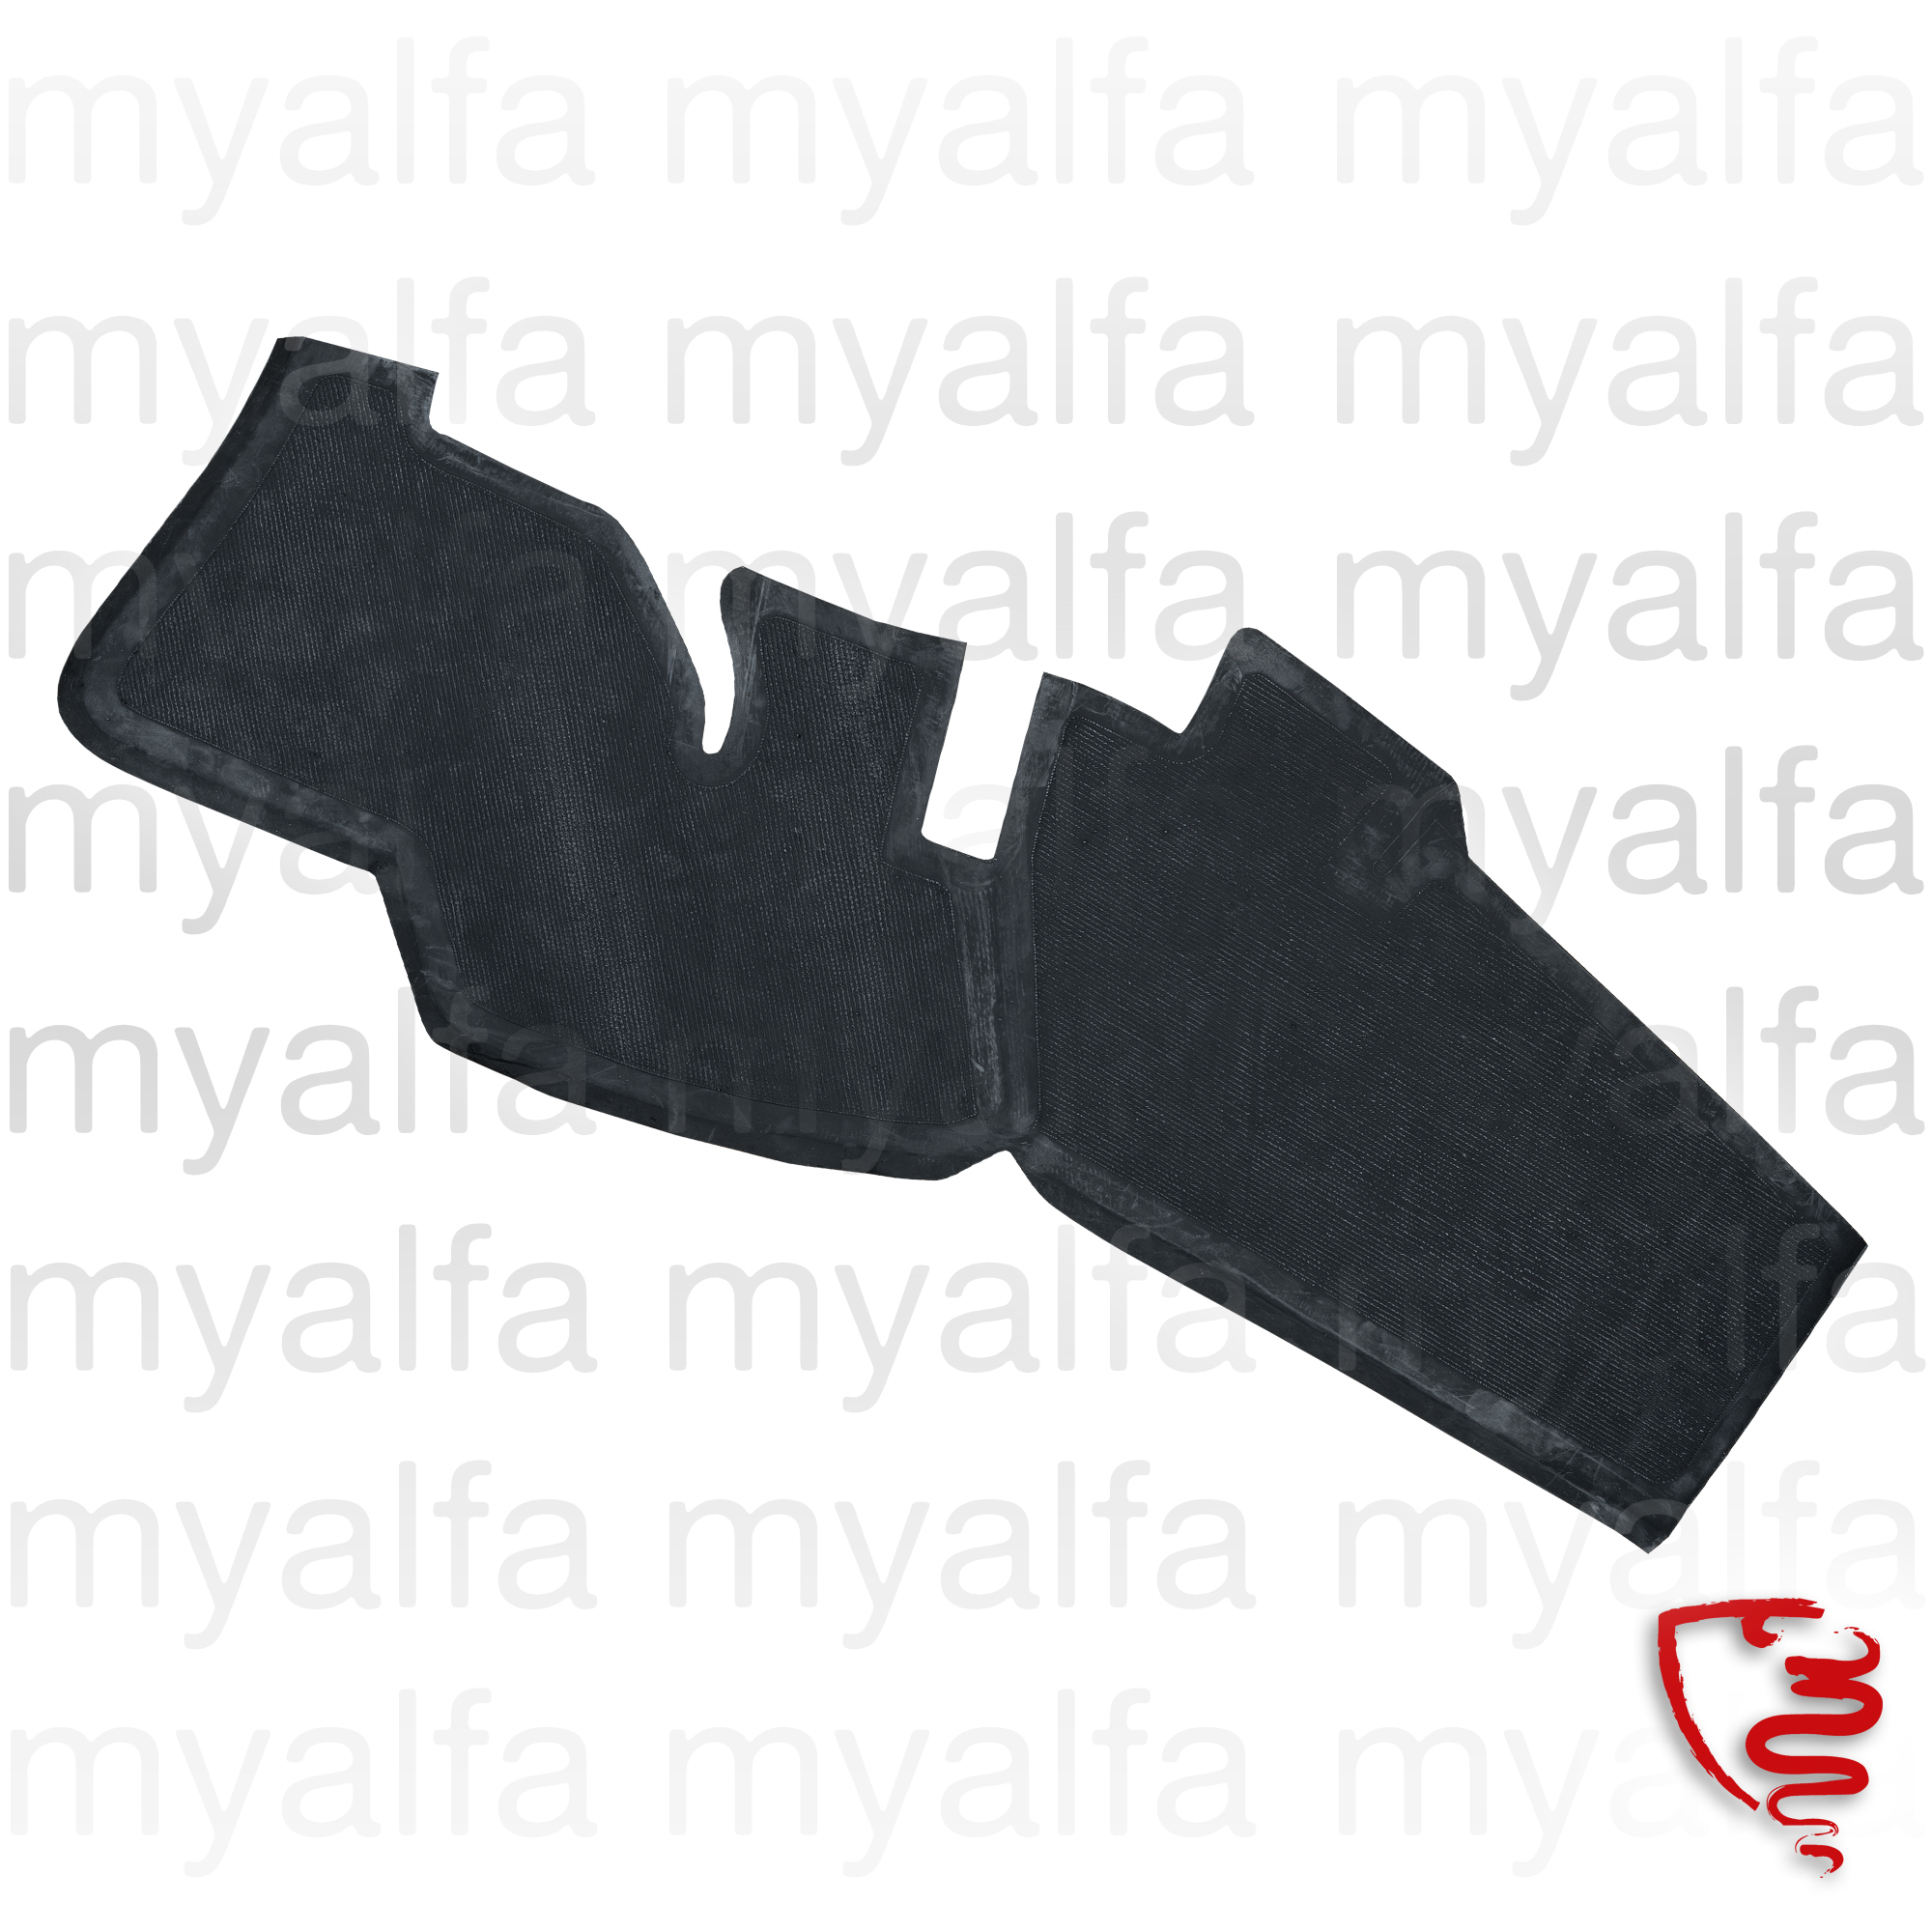 Carpet right side rubber bag GT Bertone for 105/115, Coupe, Interior, Flooring, Rubber mats